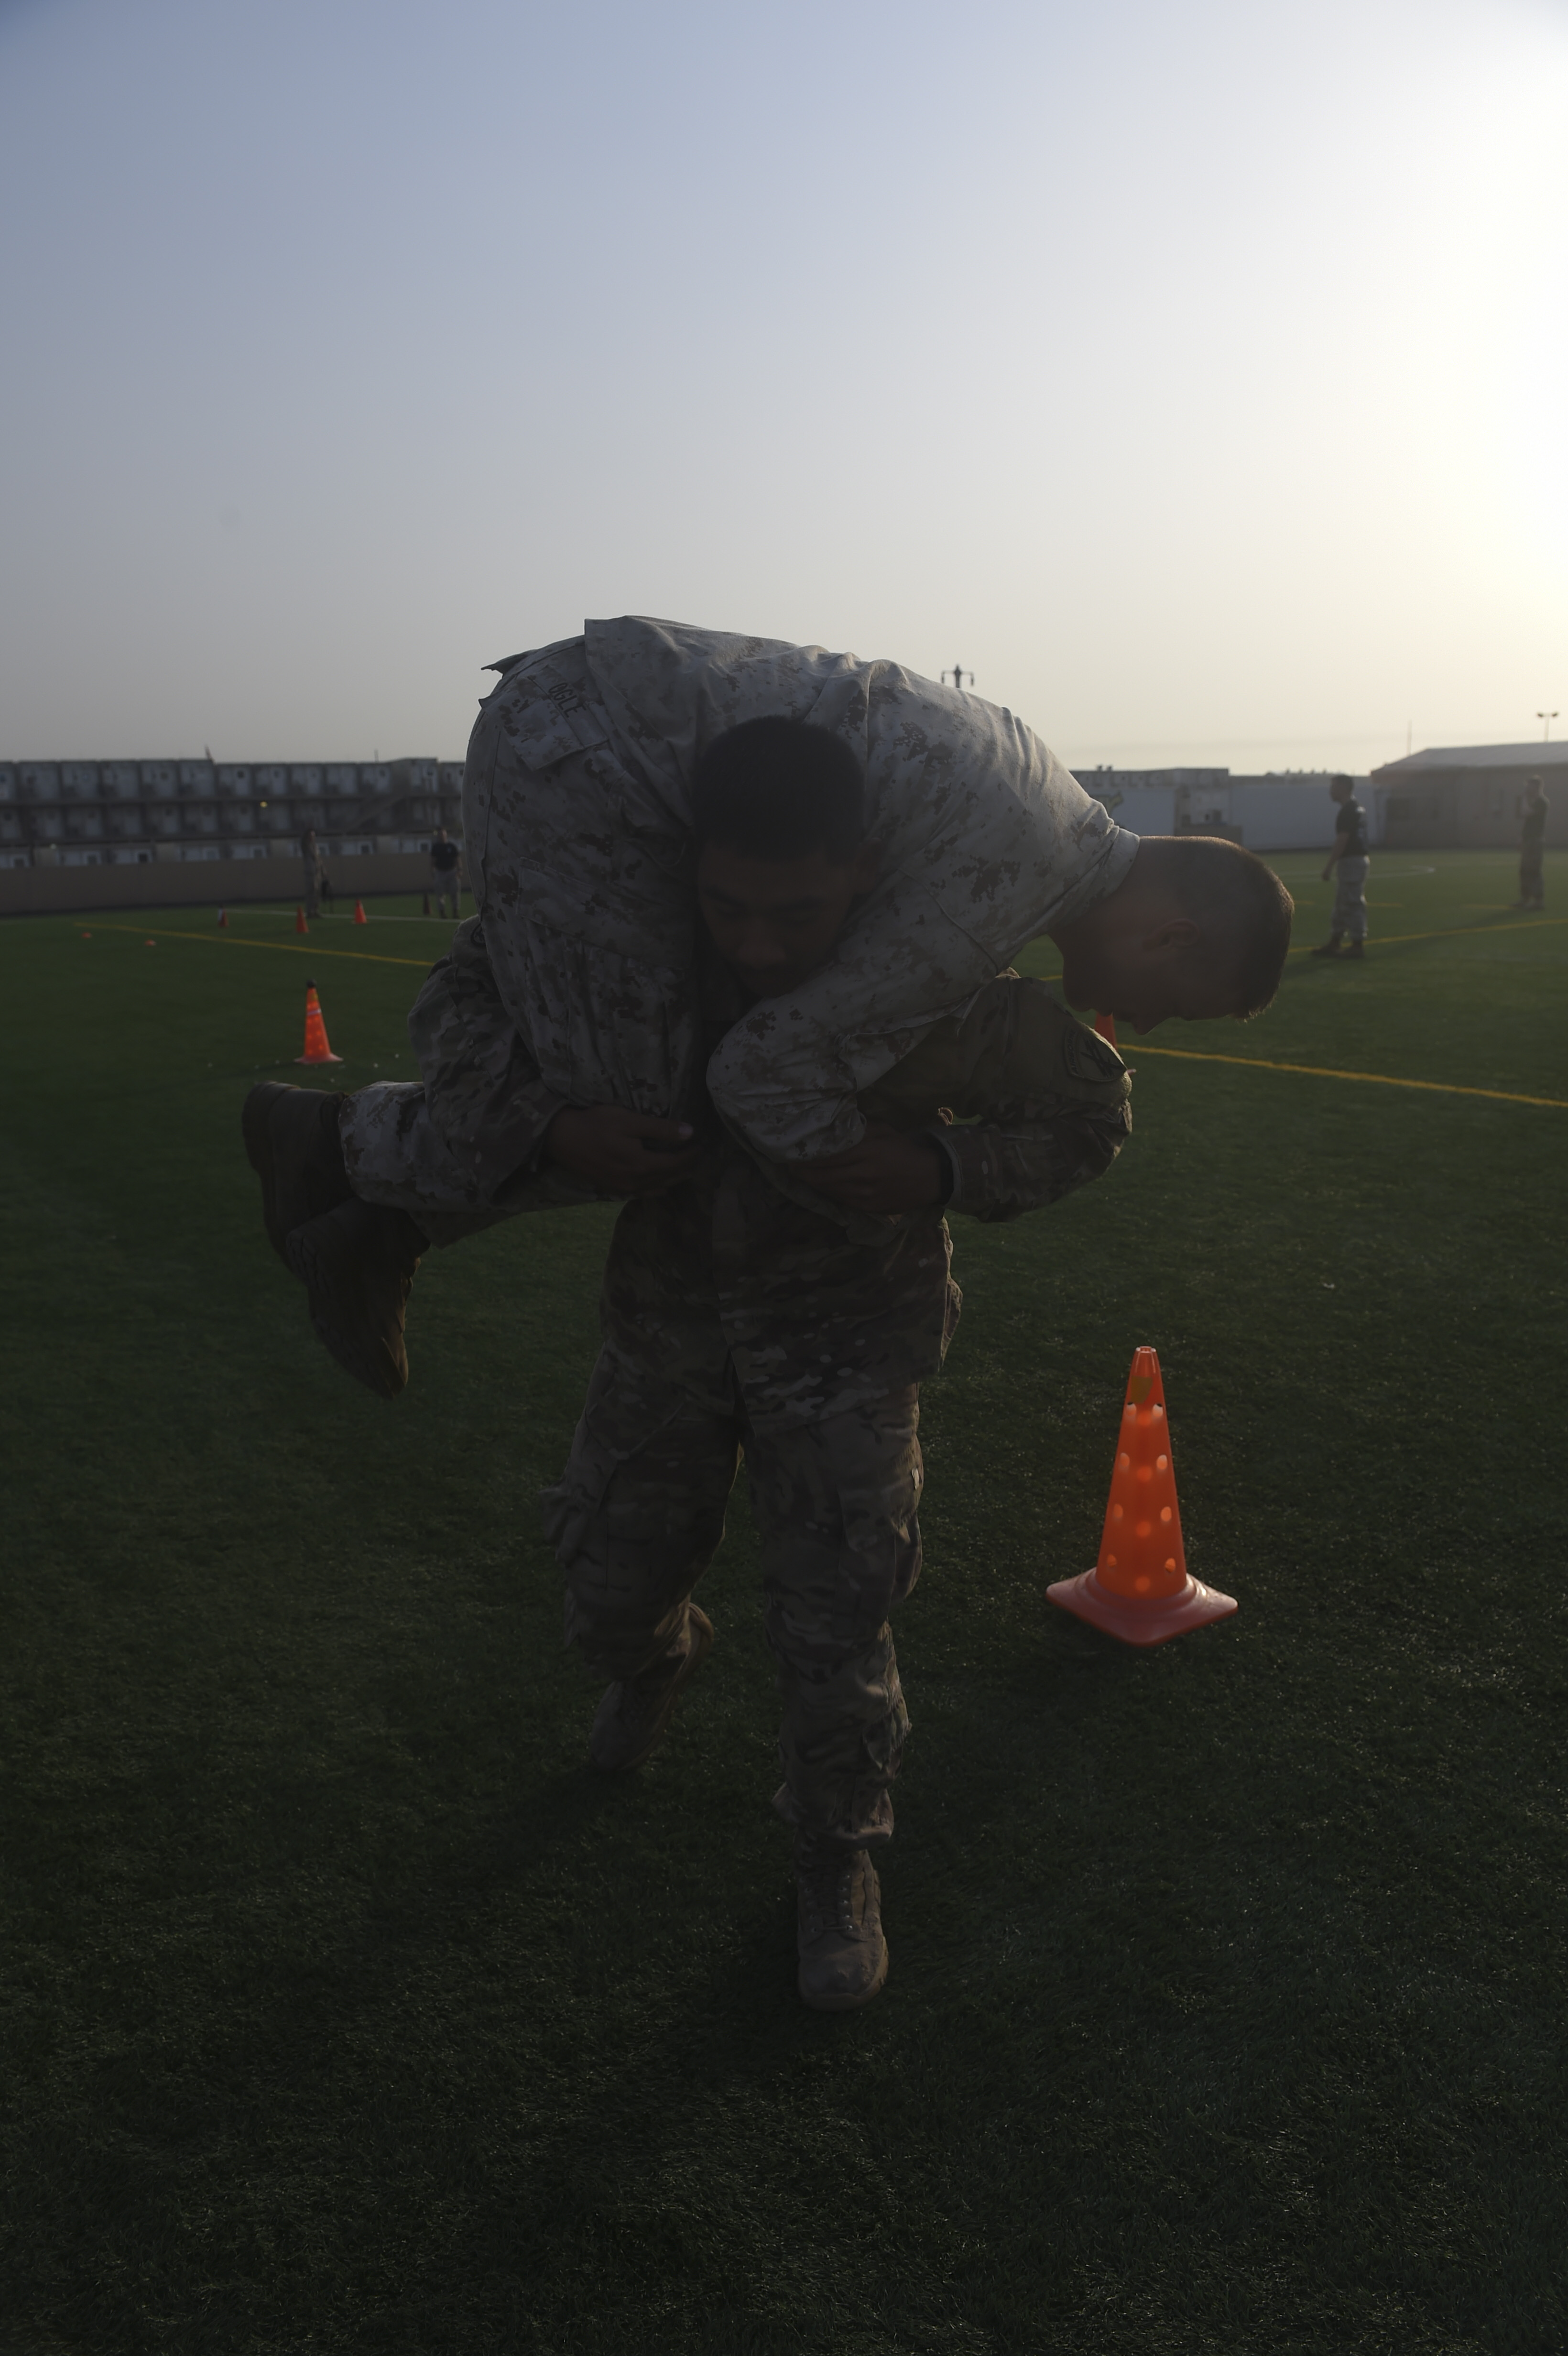 U.S. Army Spc. Kim-Sean Mam executes a fireman's carry with U.S. Marine Corps Cpl. Brandon Ogle, both assigned to Combined Joint Task Force-Horn of Africa, during the Corporal's Course at Camp Lemonnier, Djibouti, May 31, 2017. The course is a requirement for Marines in the enlisted grade of E-4, but here, all U.S. service members in the ranks of corporal, specialist, senior airman or petty officer third class were allowed to participate. (U.S. Air Force photo by Staff Sgt. Eboni Prince)